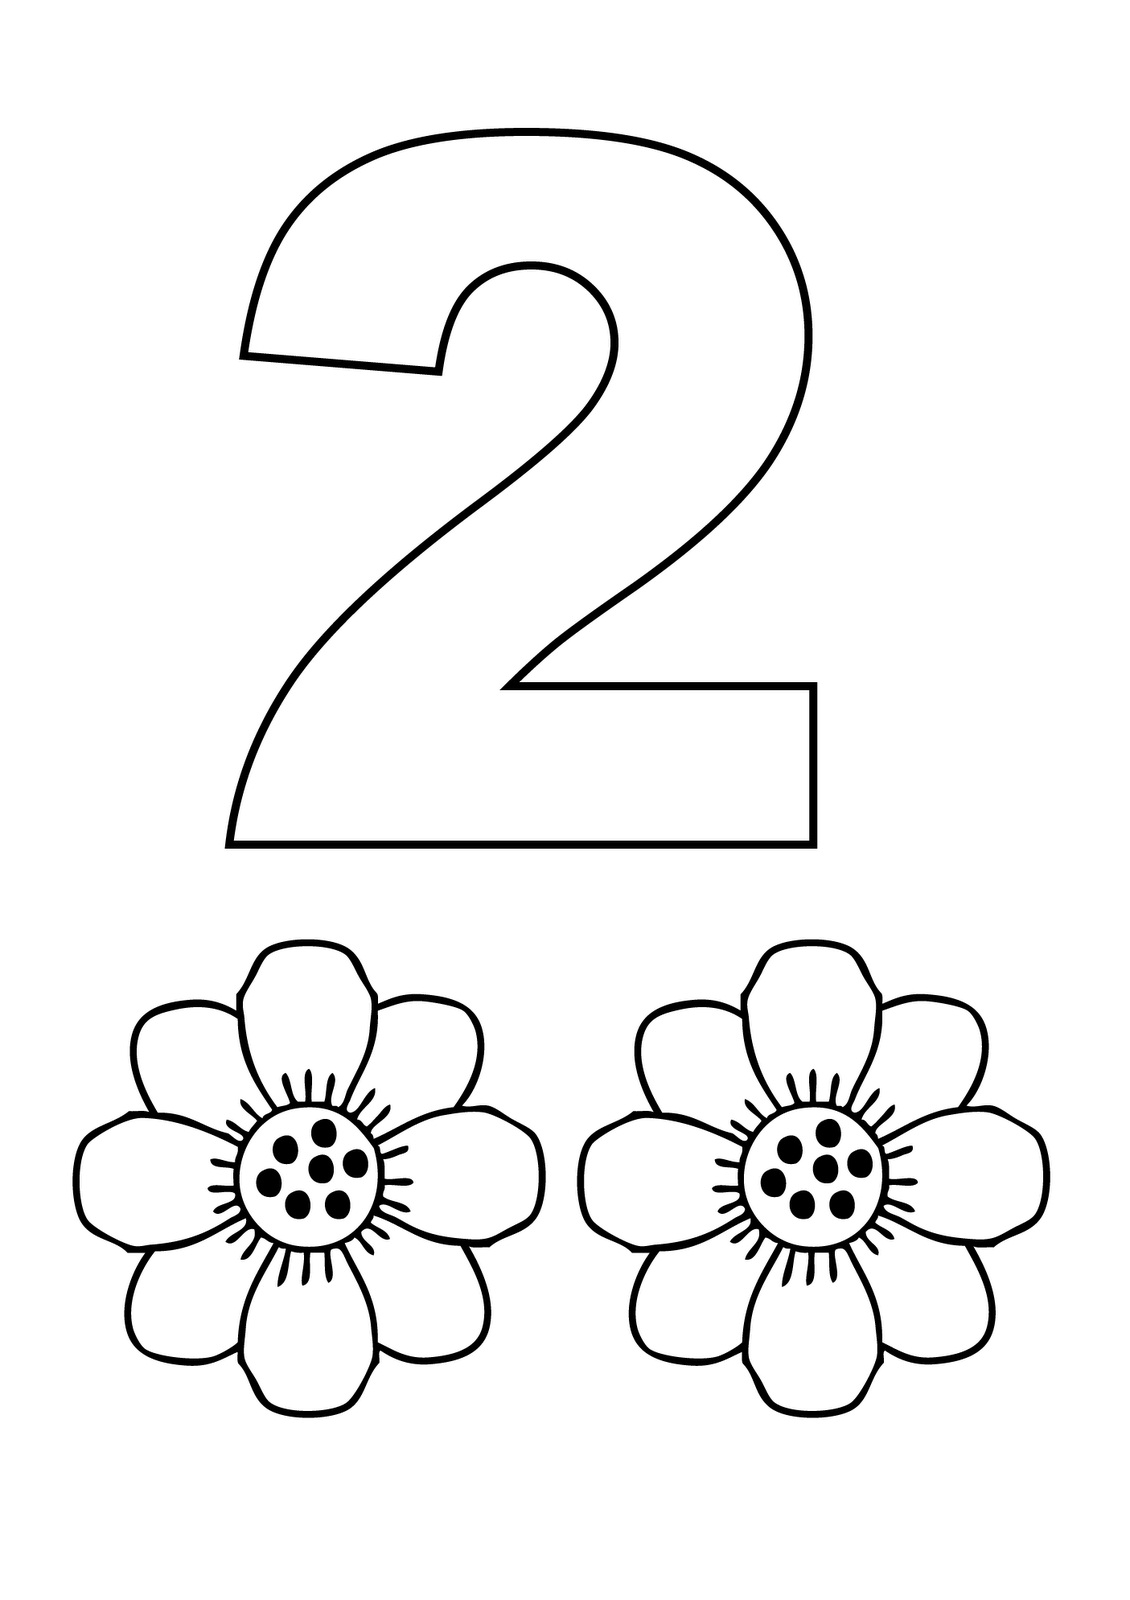 Number 2 coloring pages - Number 2 Coloring Page 2 Coloring Page